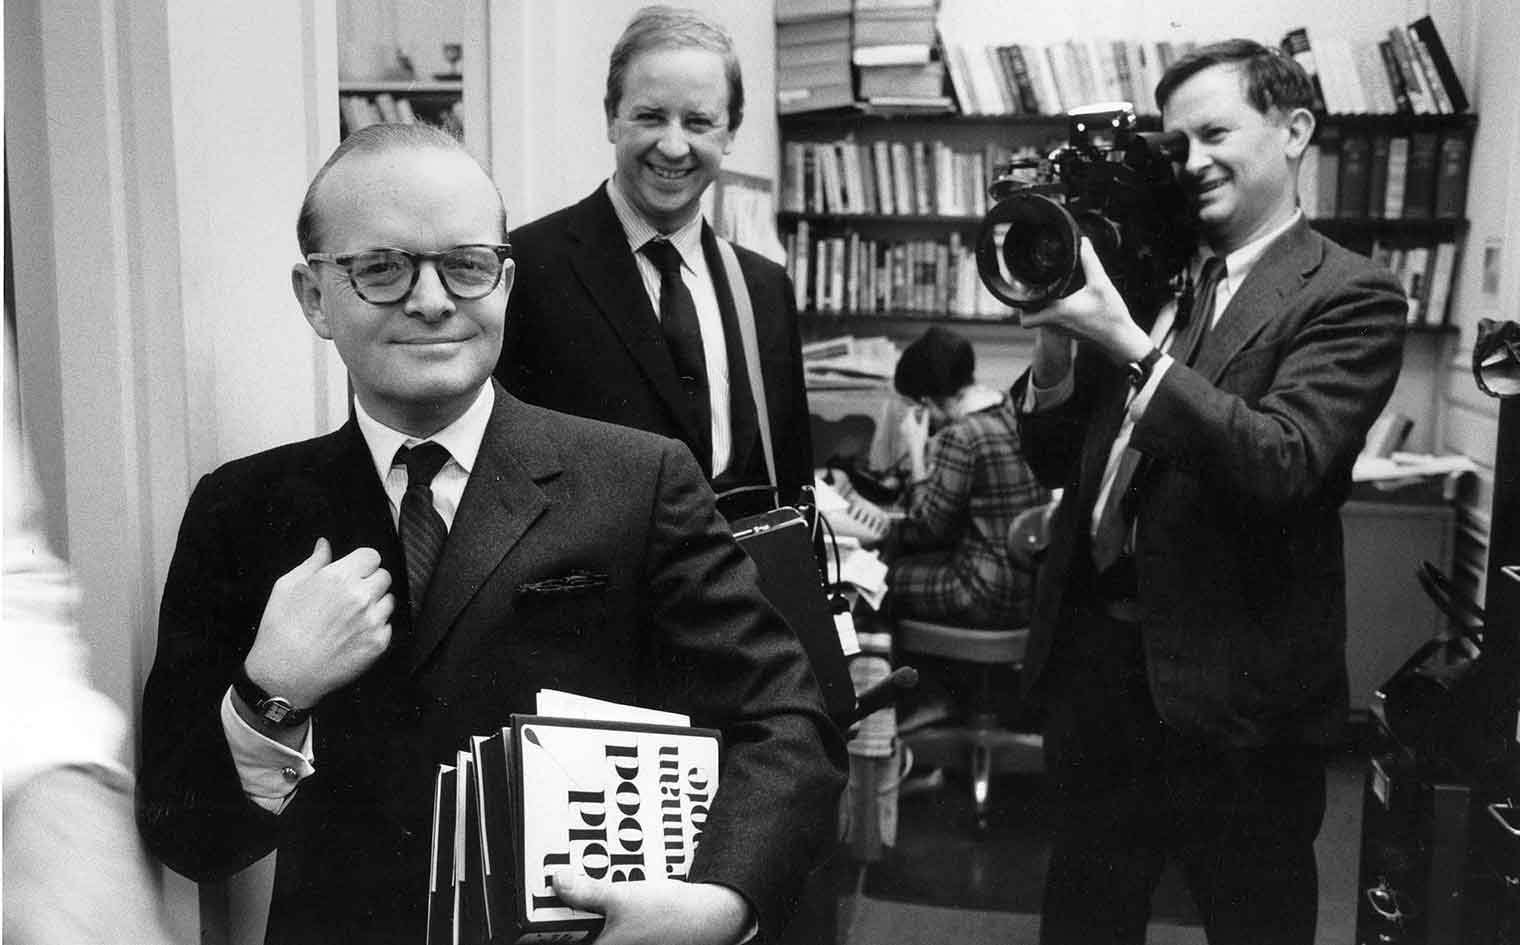 Will the Real Normal Mailer Please Stand Up? &  A Visit with Truman Capote